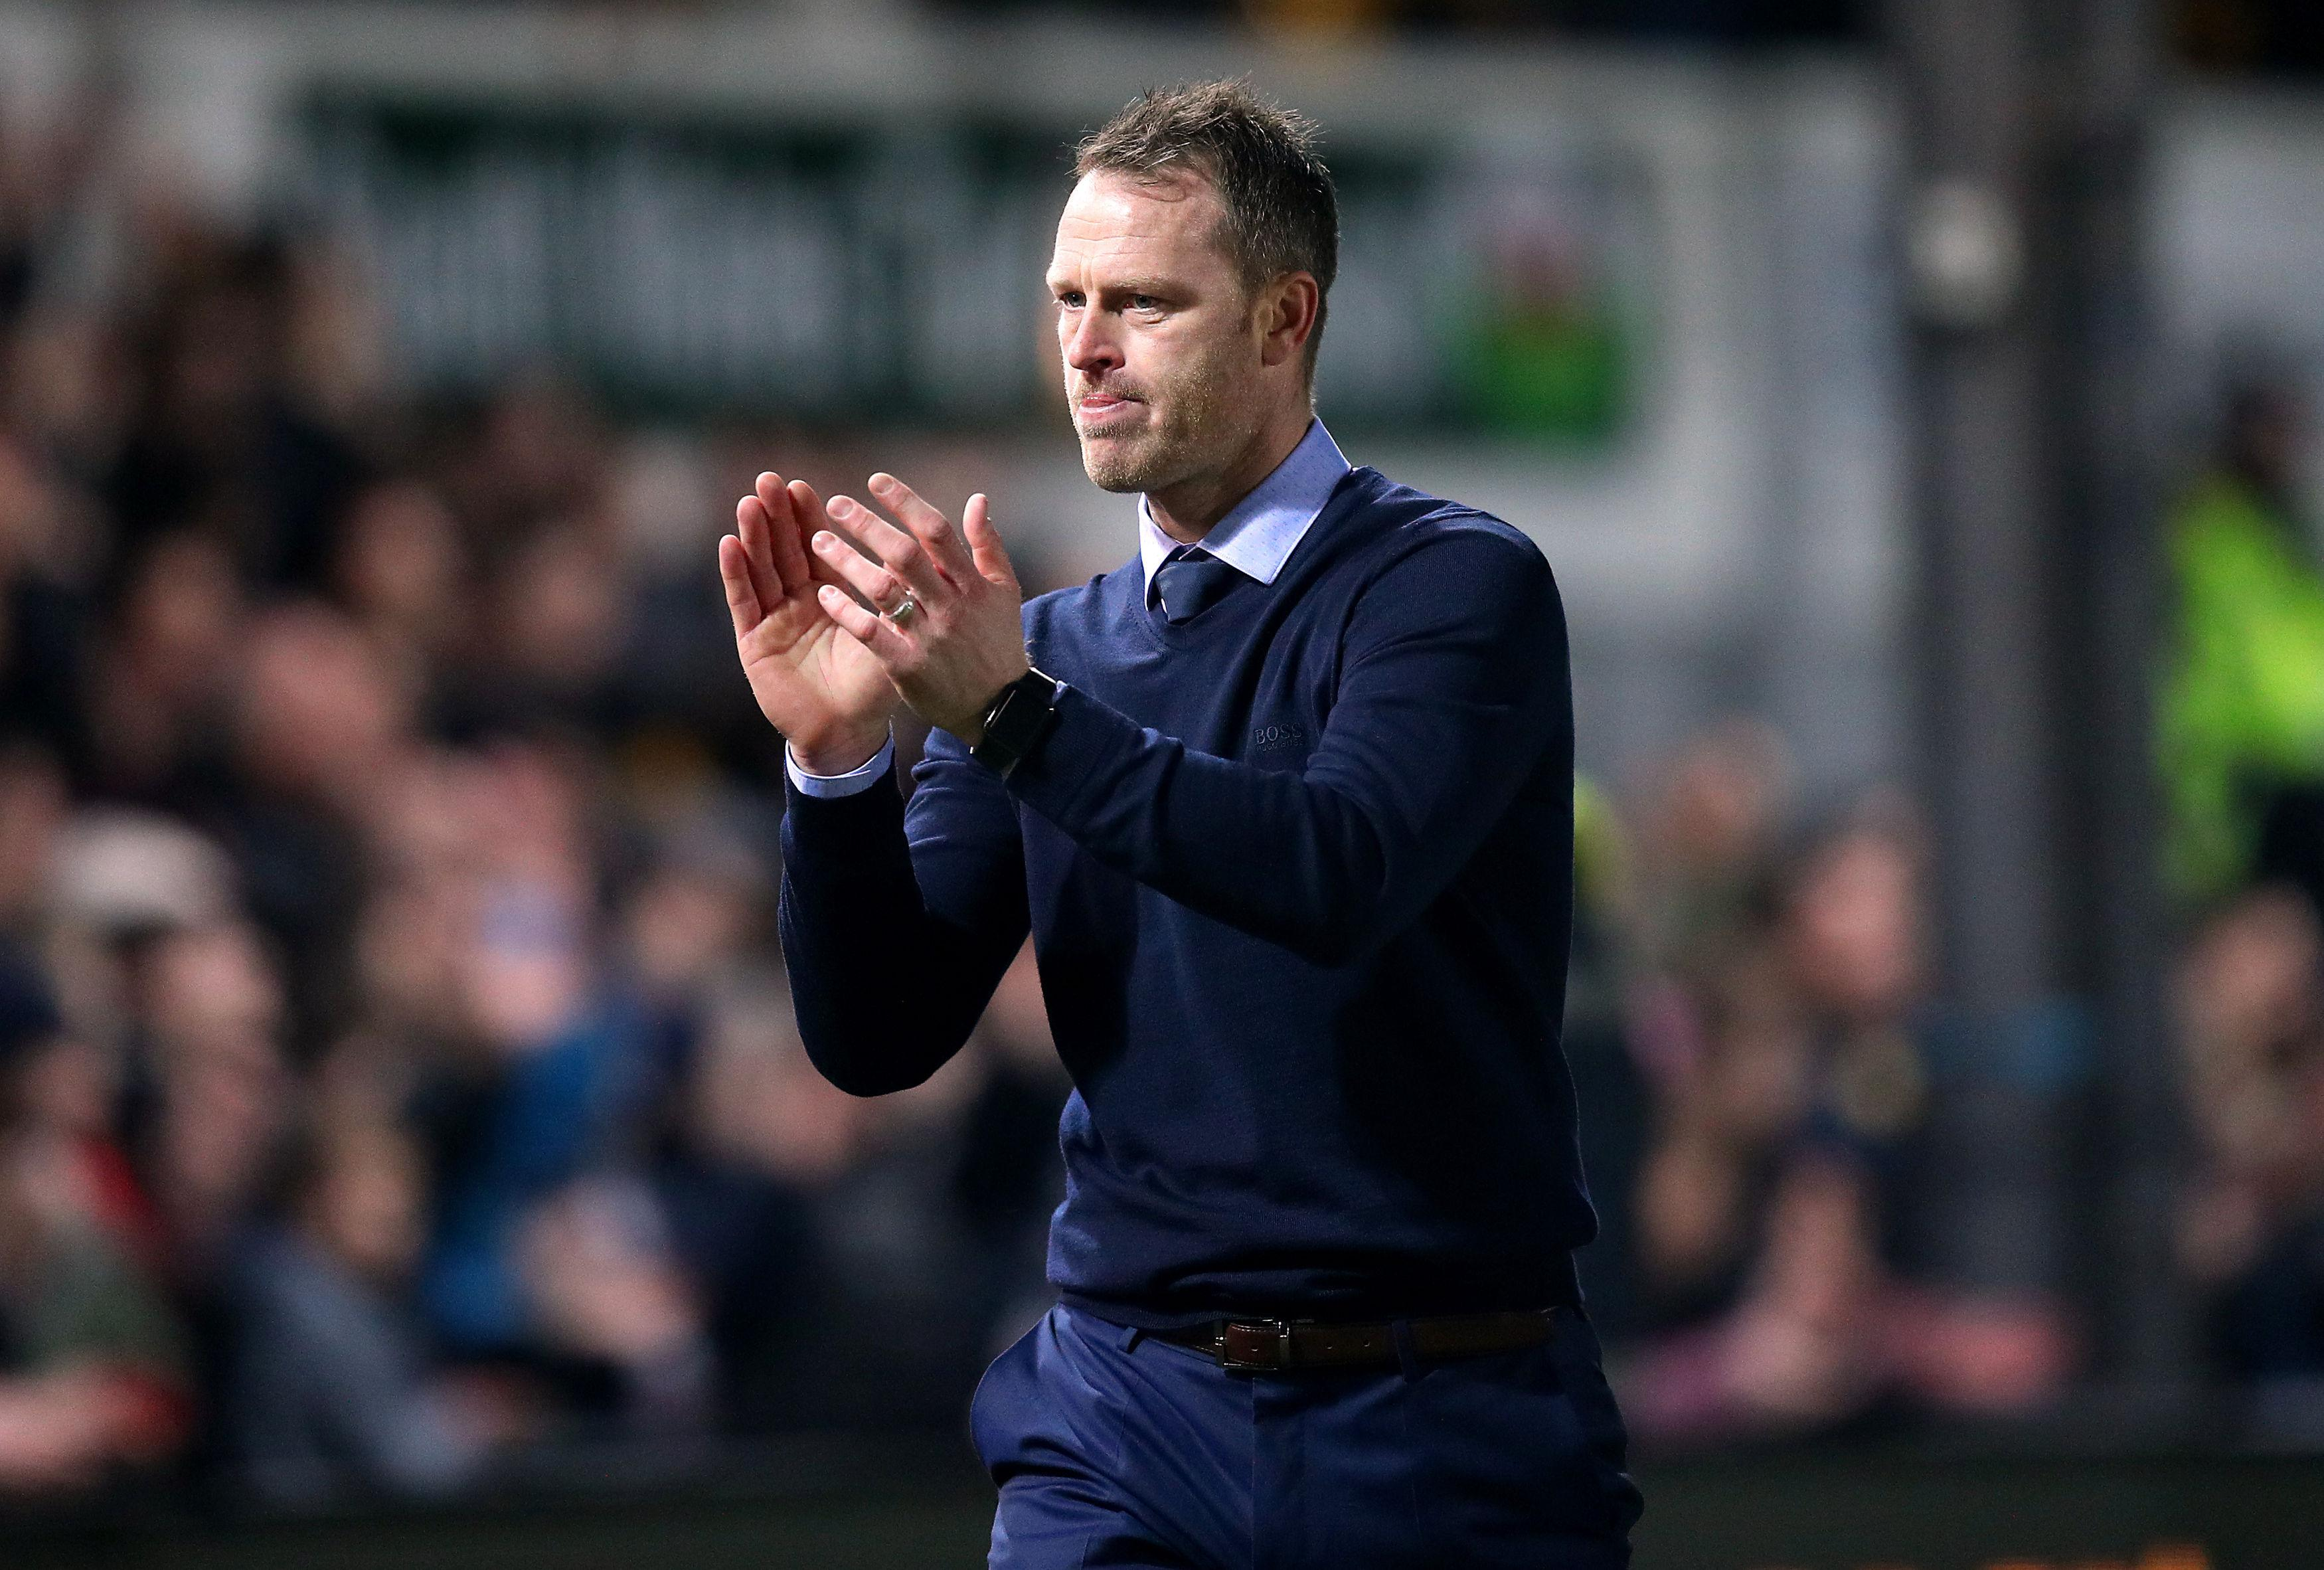 Newport boss Michael Flynn and his scouting staff deserve plenty of credit